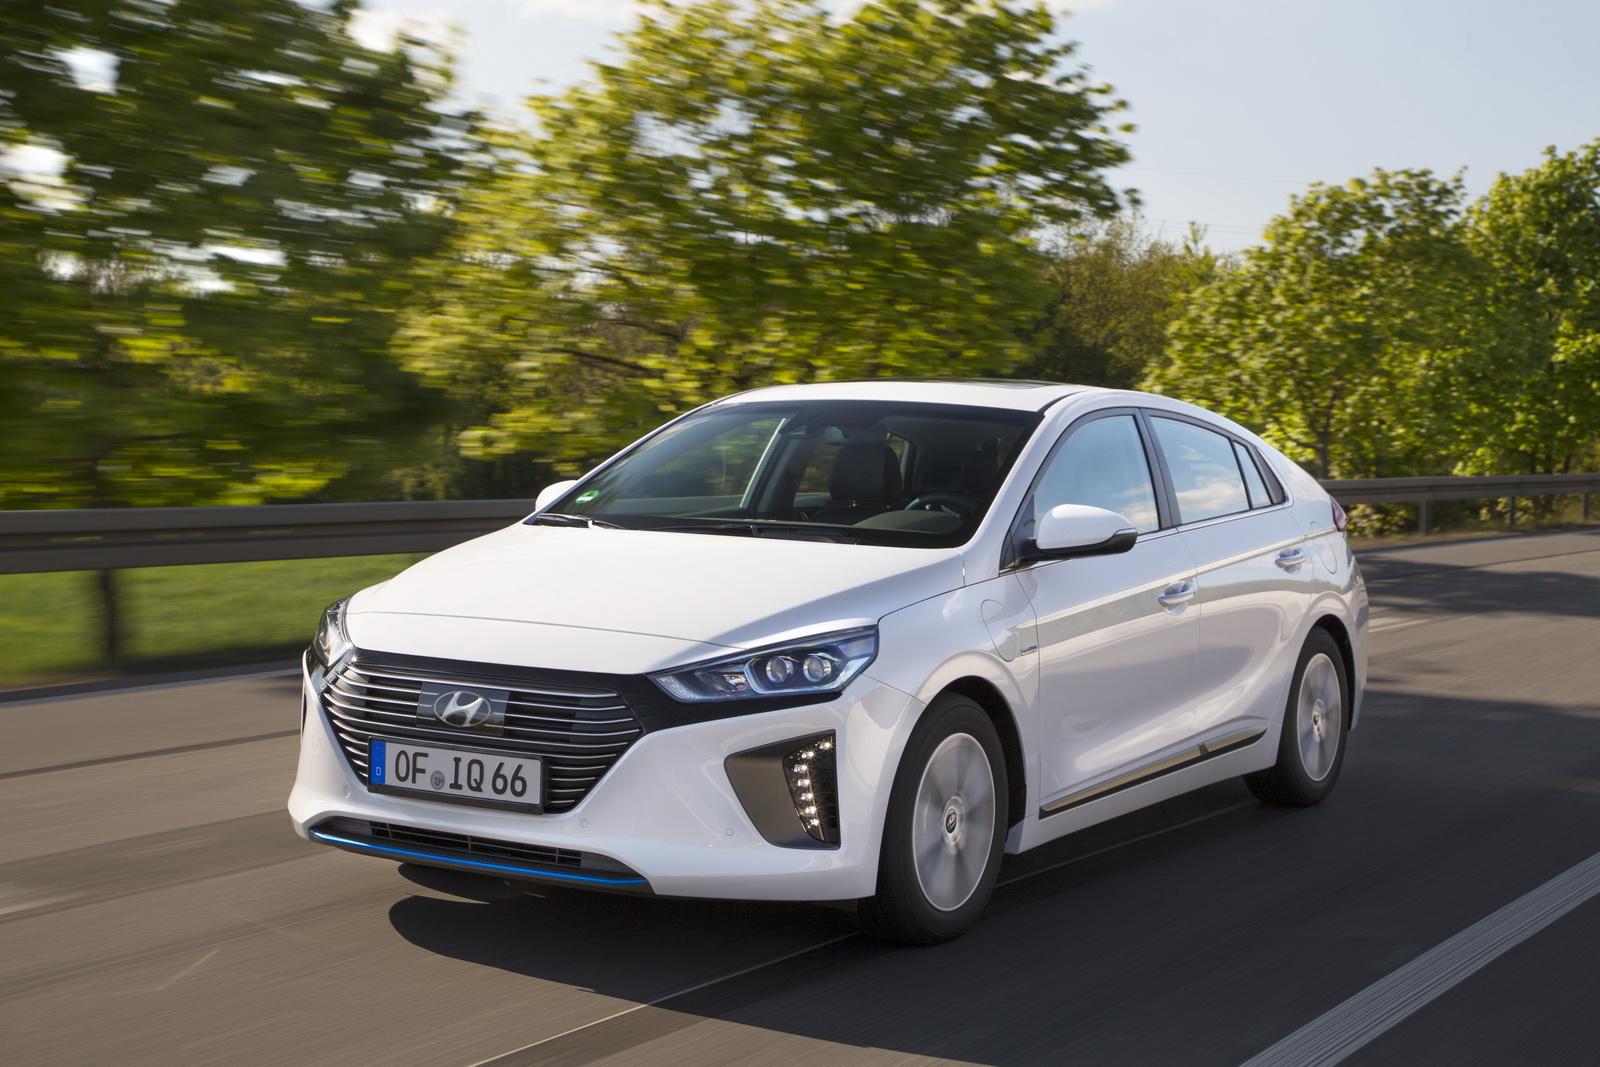 hyundai ioniq plug in hybrid now available for order in europe 40 pics carscoops. Black Bedroom Furniture Sets. Home Design Ideas